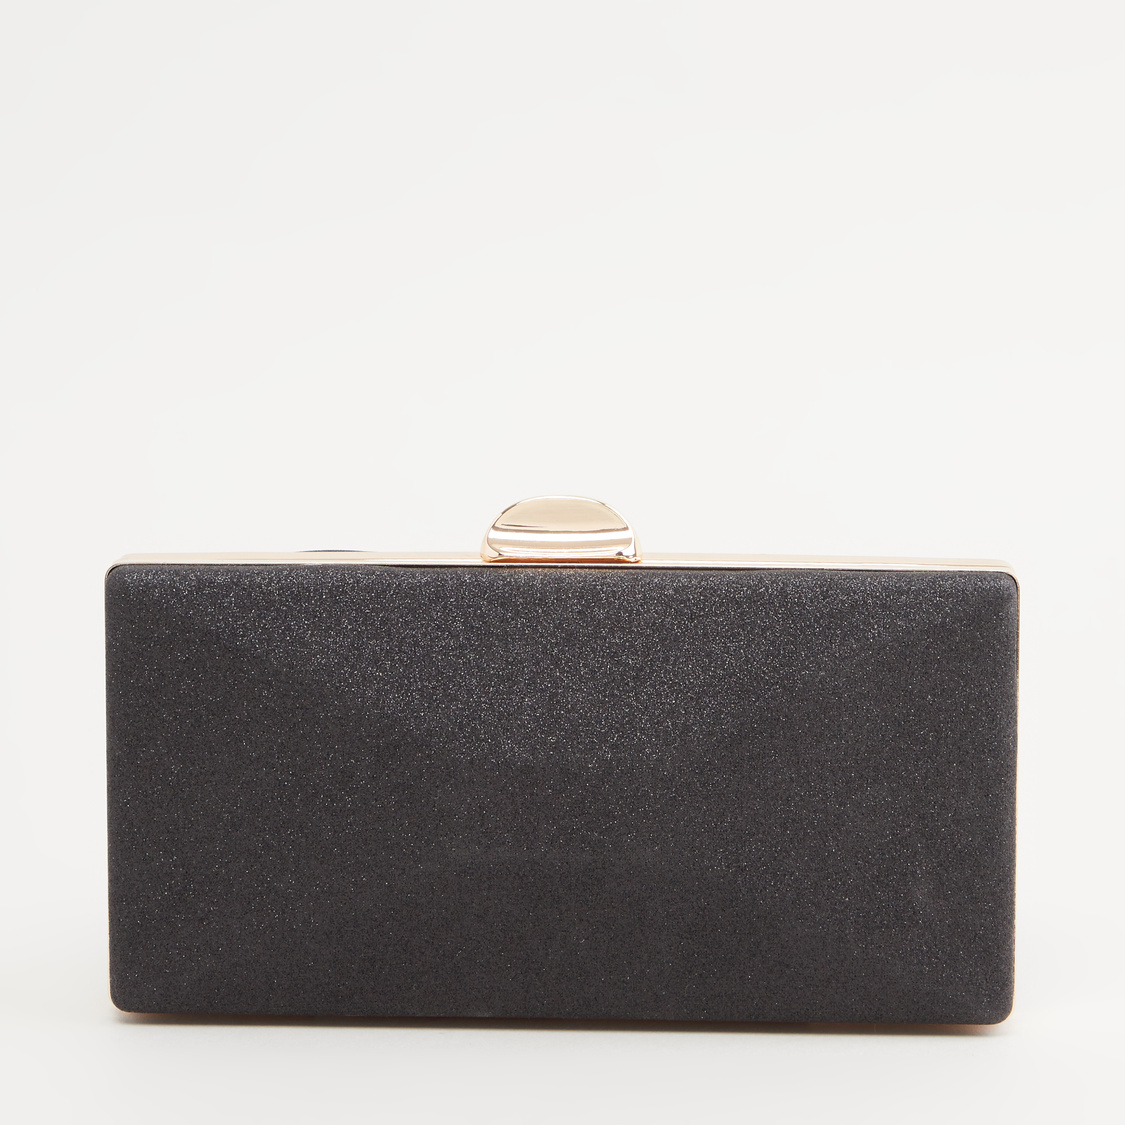 Embellished Clutch with Metallic Chain